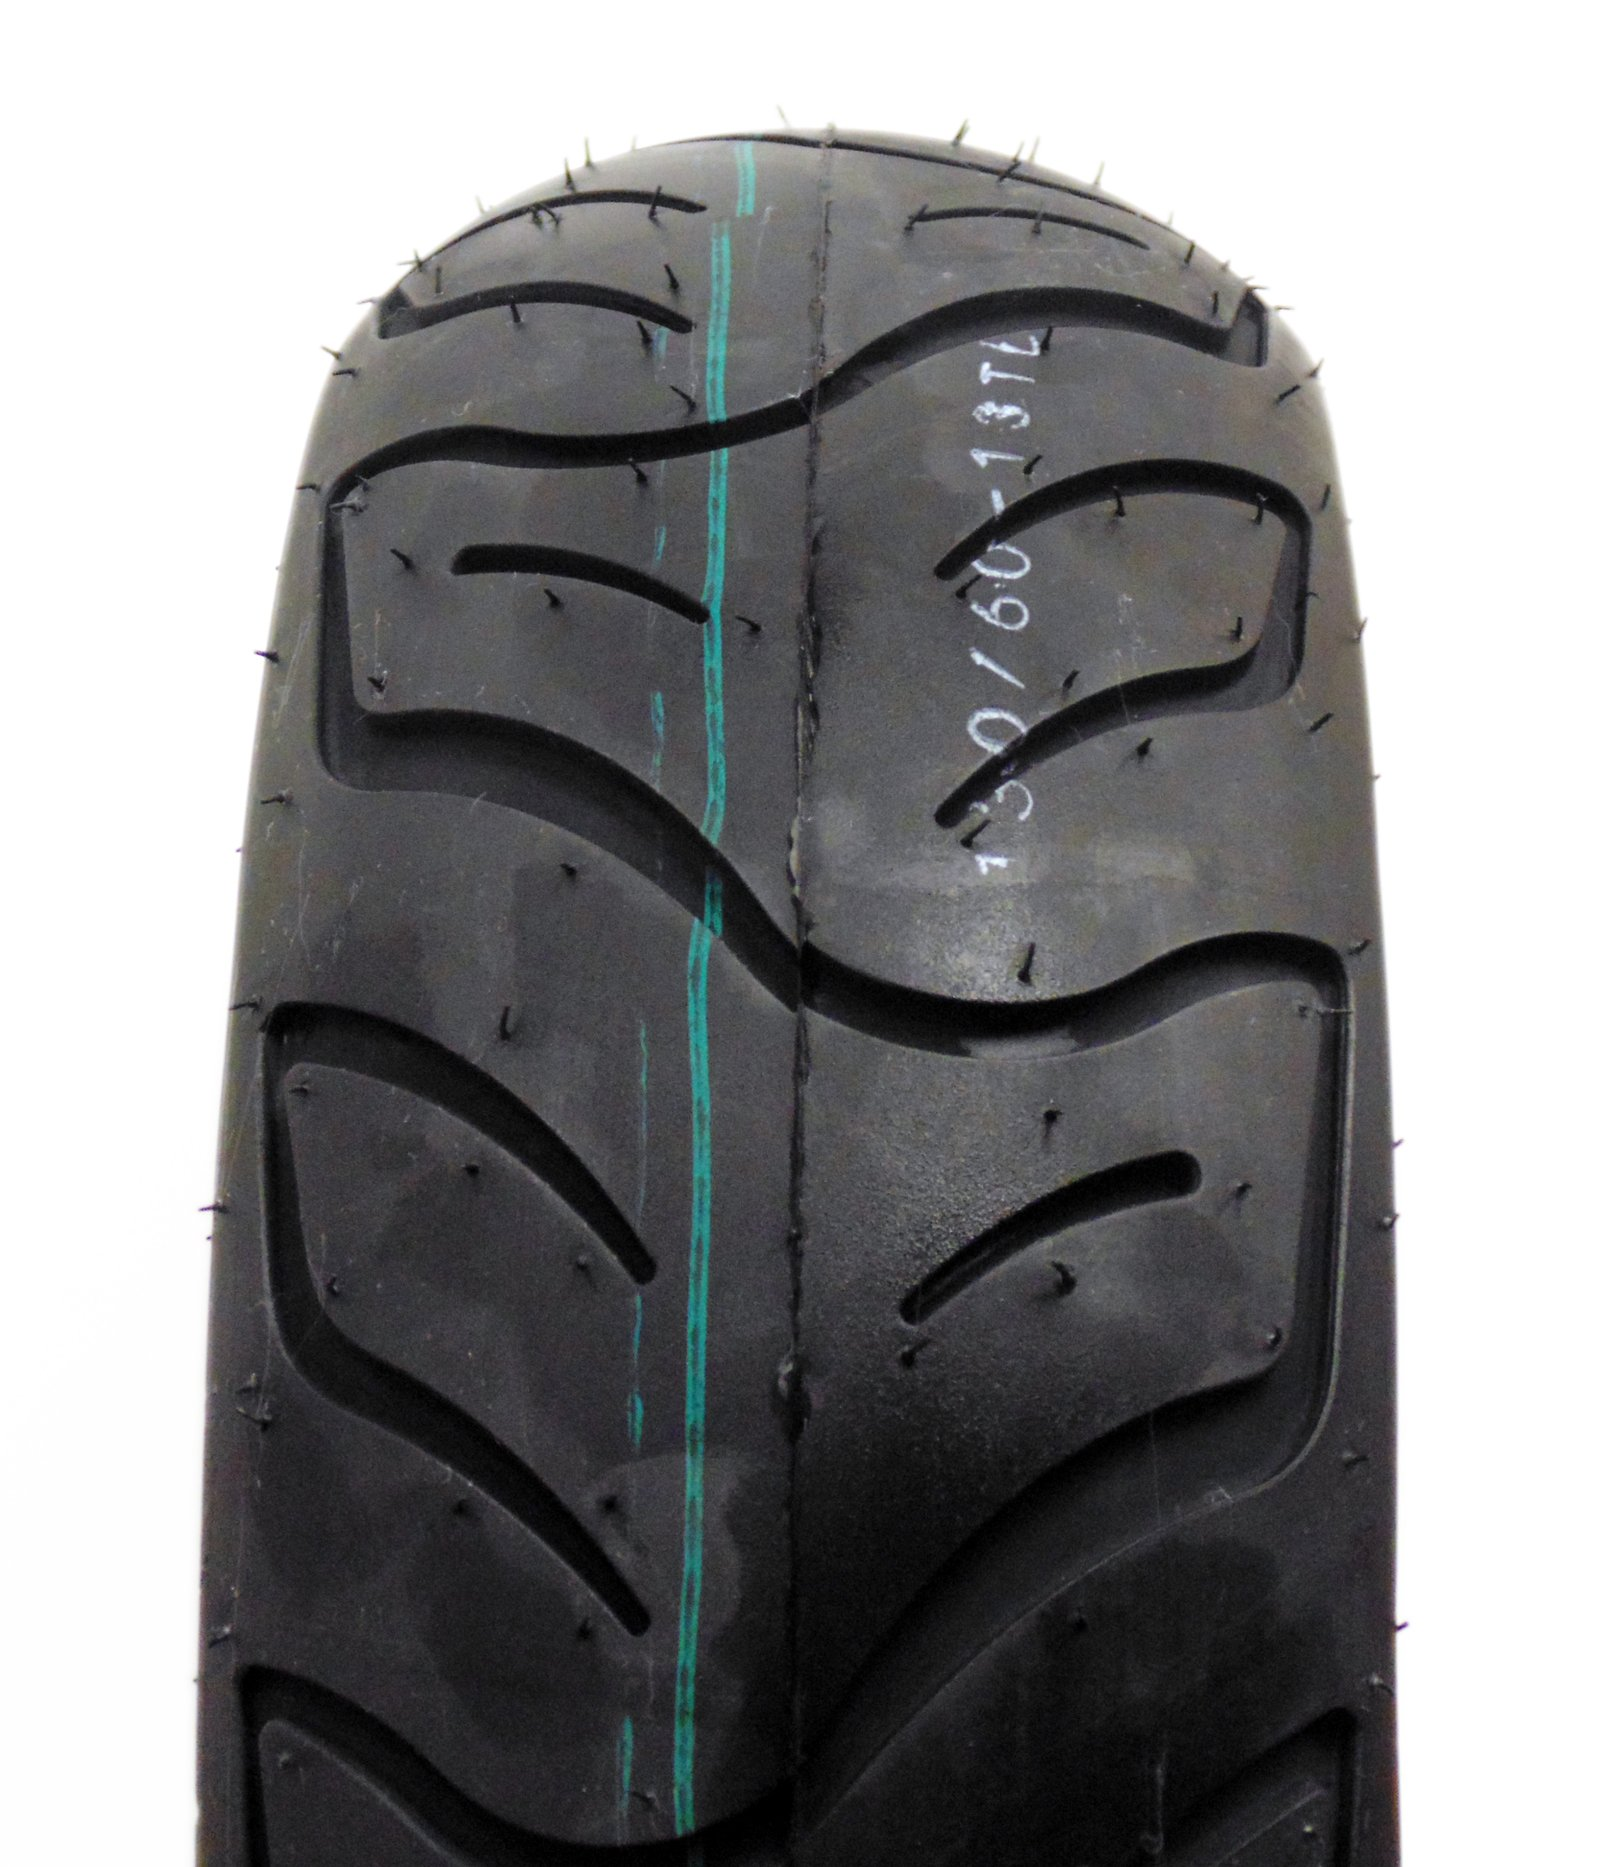 Tire 130/60-13 Tubeless Front/Rear Motorcycle Scooter Moped by MMG (Image #2)